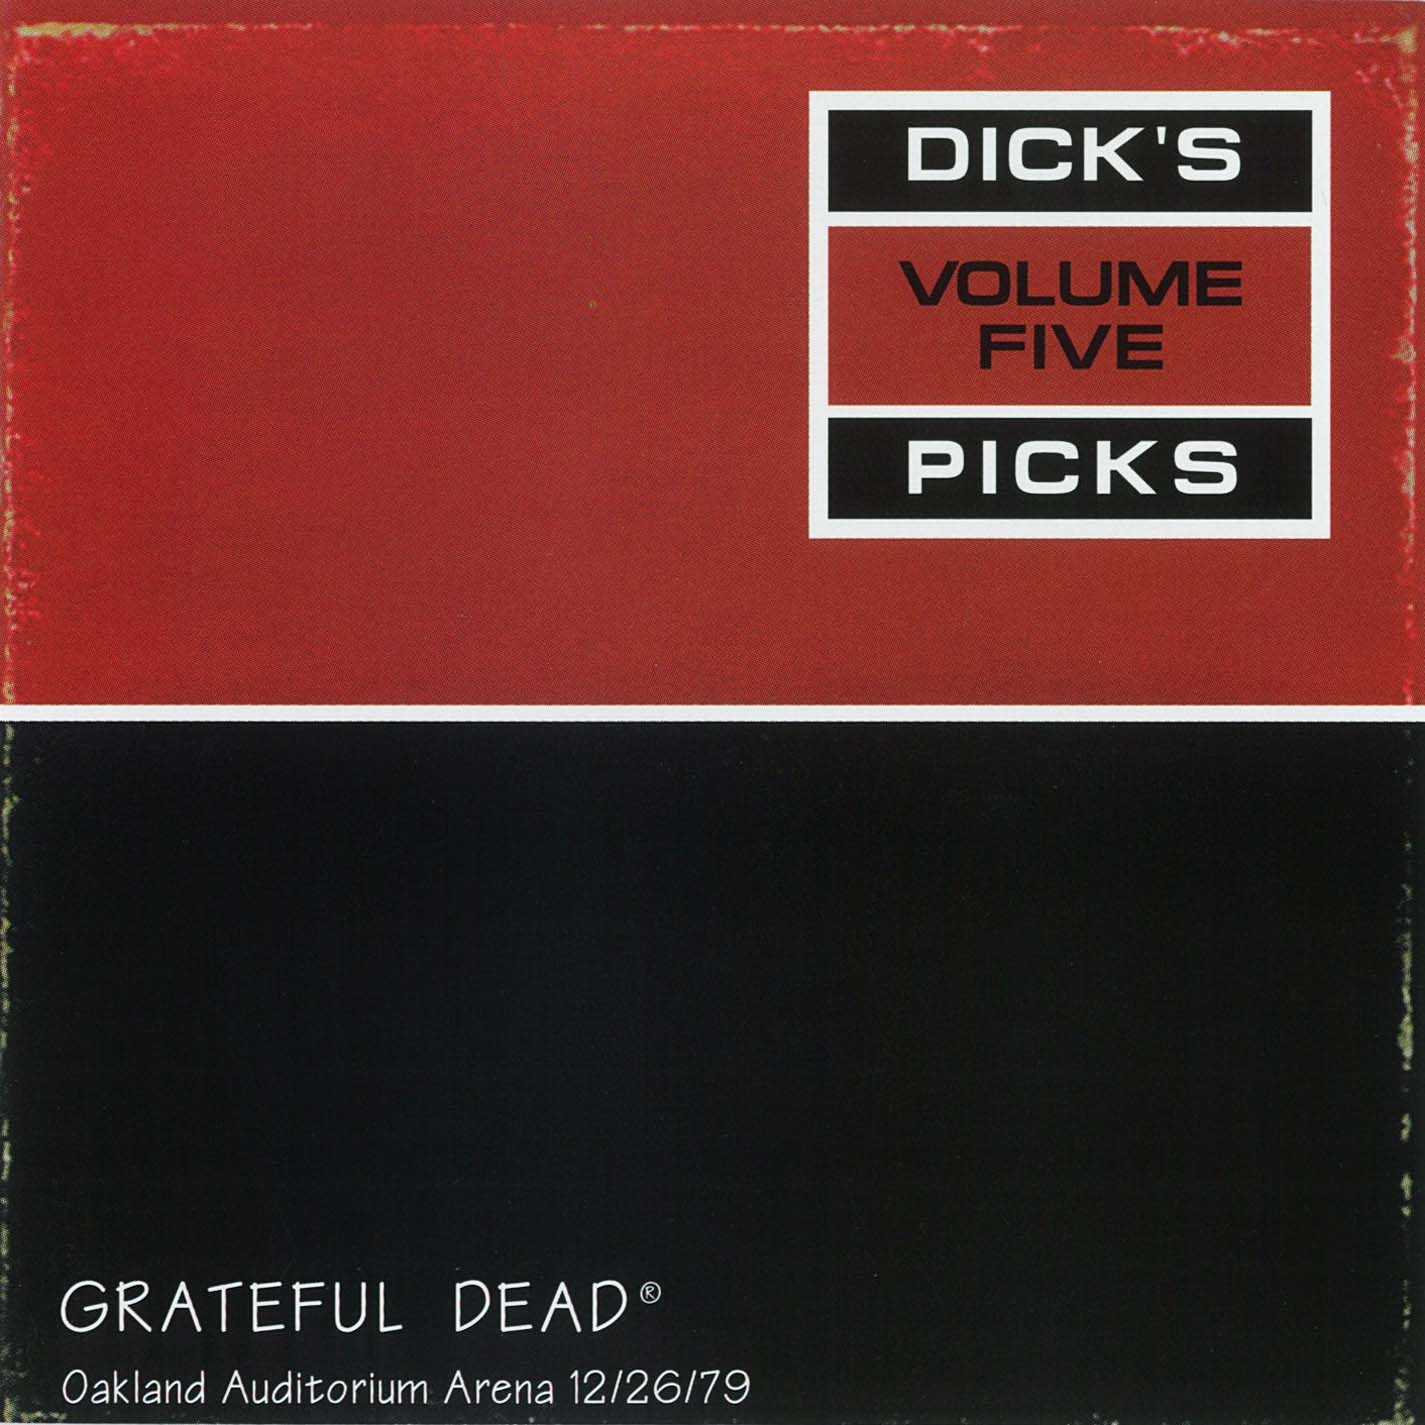 Grateful Dead Dick's Picks 5 album cover artwork